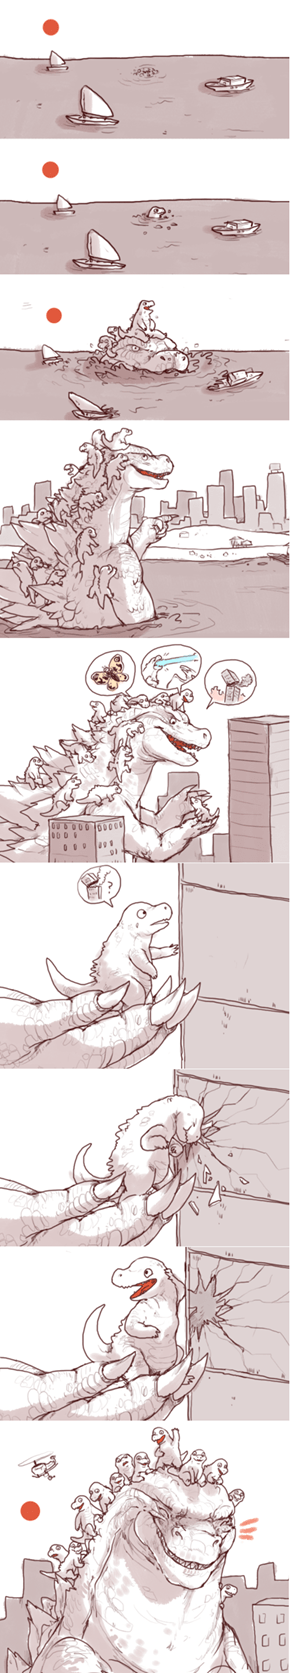 Best Kaiju Dad